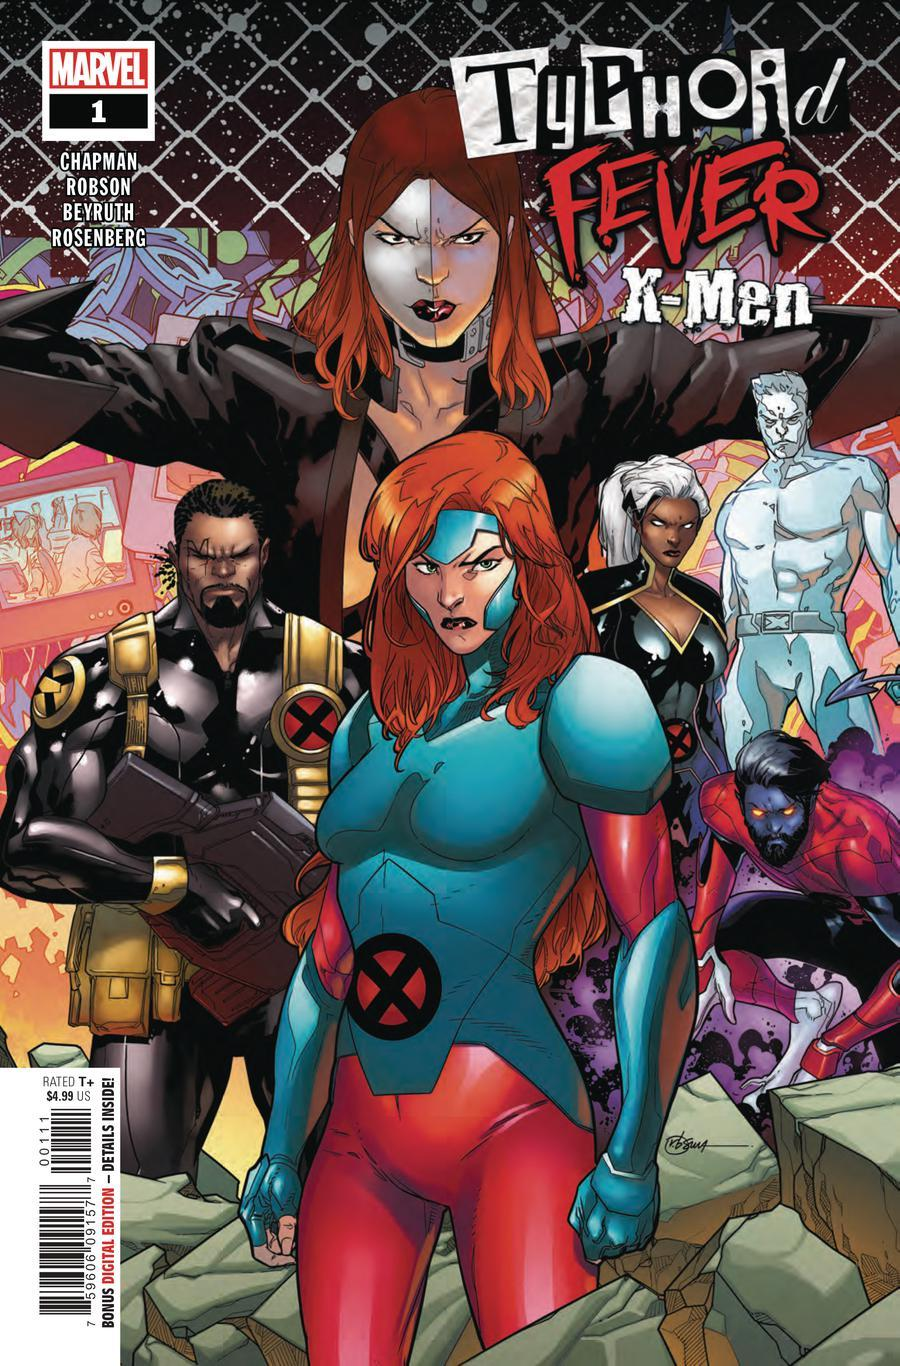 Typhoid Fever X-Men Vol. 1 #1